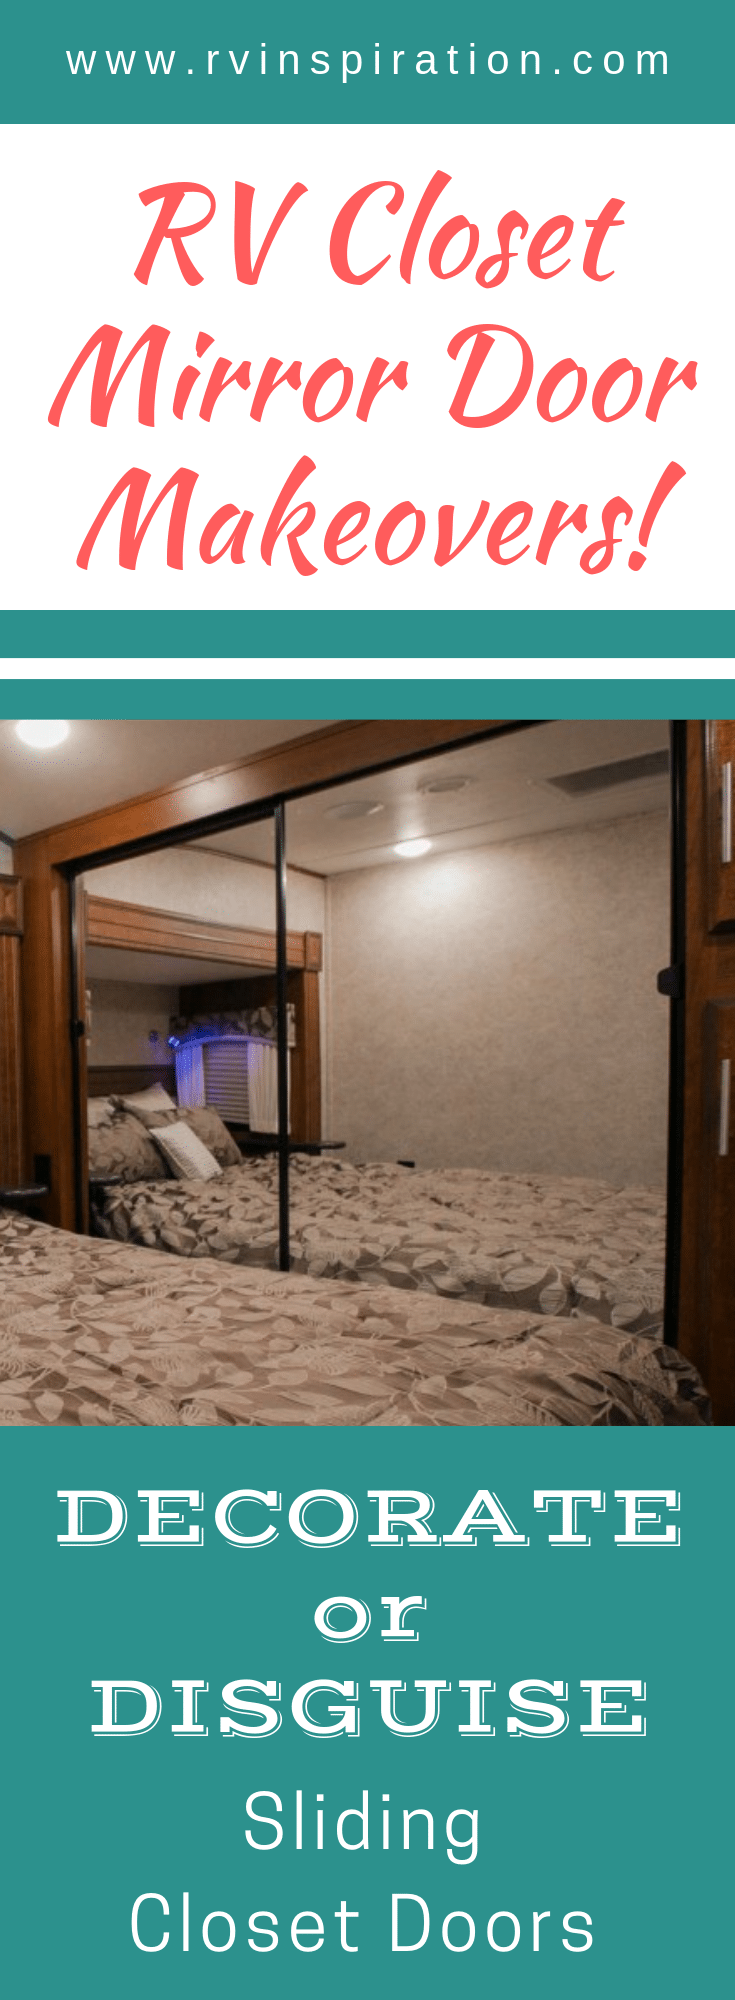 Looking to get rid of the mirrors in your motorhome or travel trailer bedroom? Take a look at how these RV owners gave their closets a makeover!